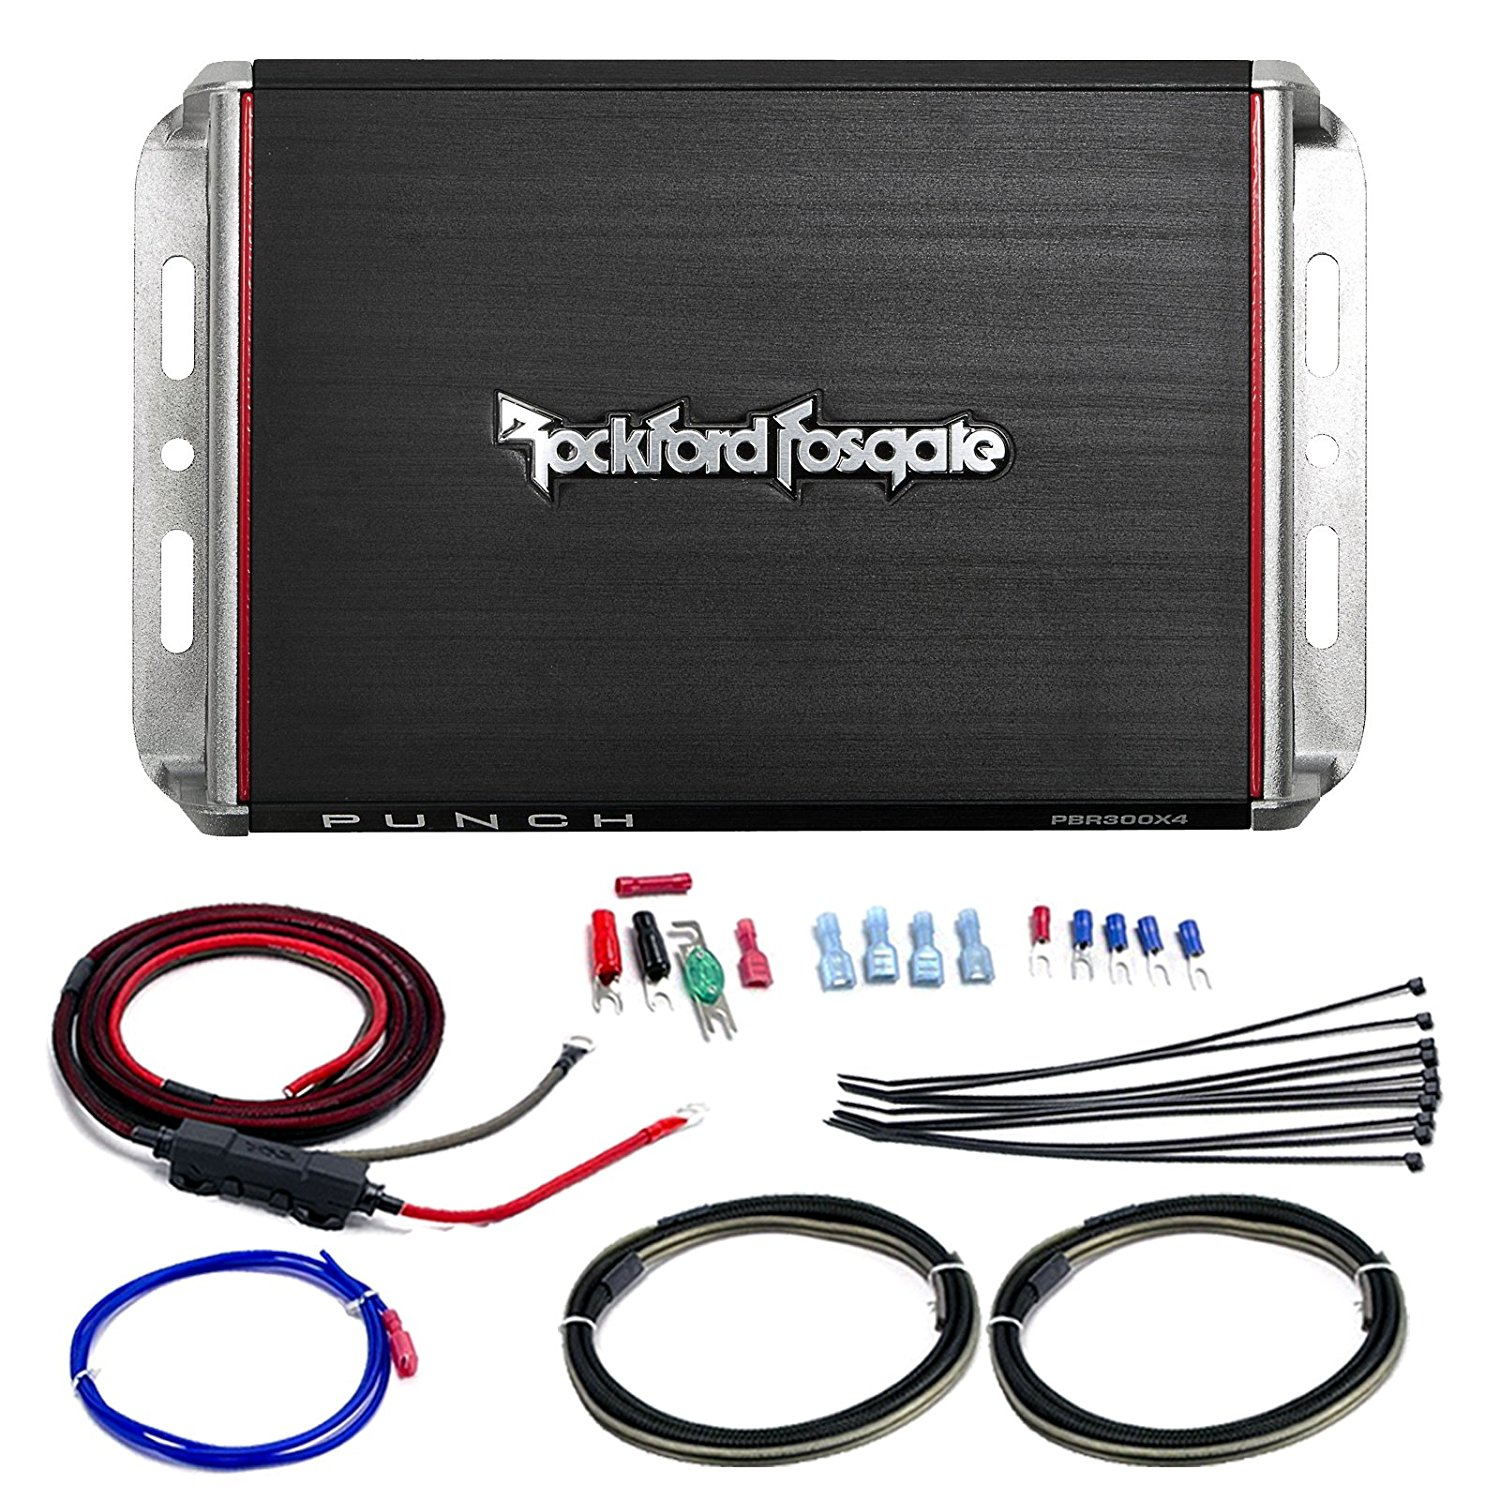 Marine Amp Bundle: Rockford Fosgate PBR300X4 Punch 300-Watt 4-Channel Boosted Rail Compact Amplifier Combo With Scosche 10-AWG OFC Moto Amp Power Installation Kit (4 Channel)